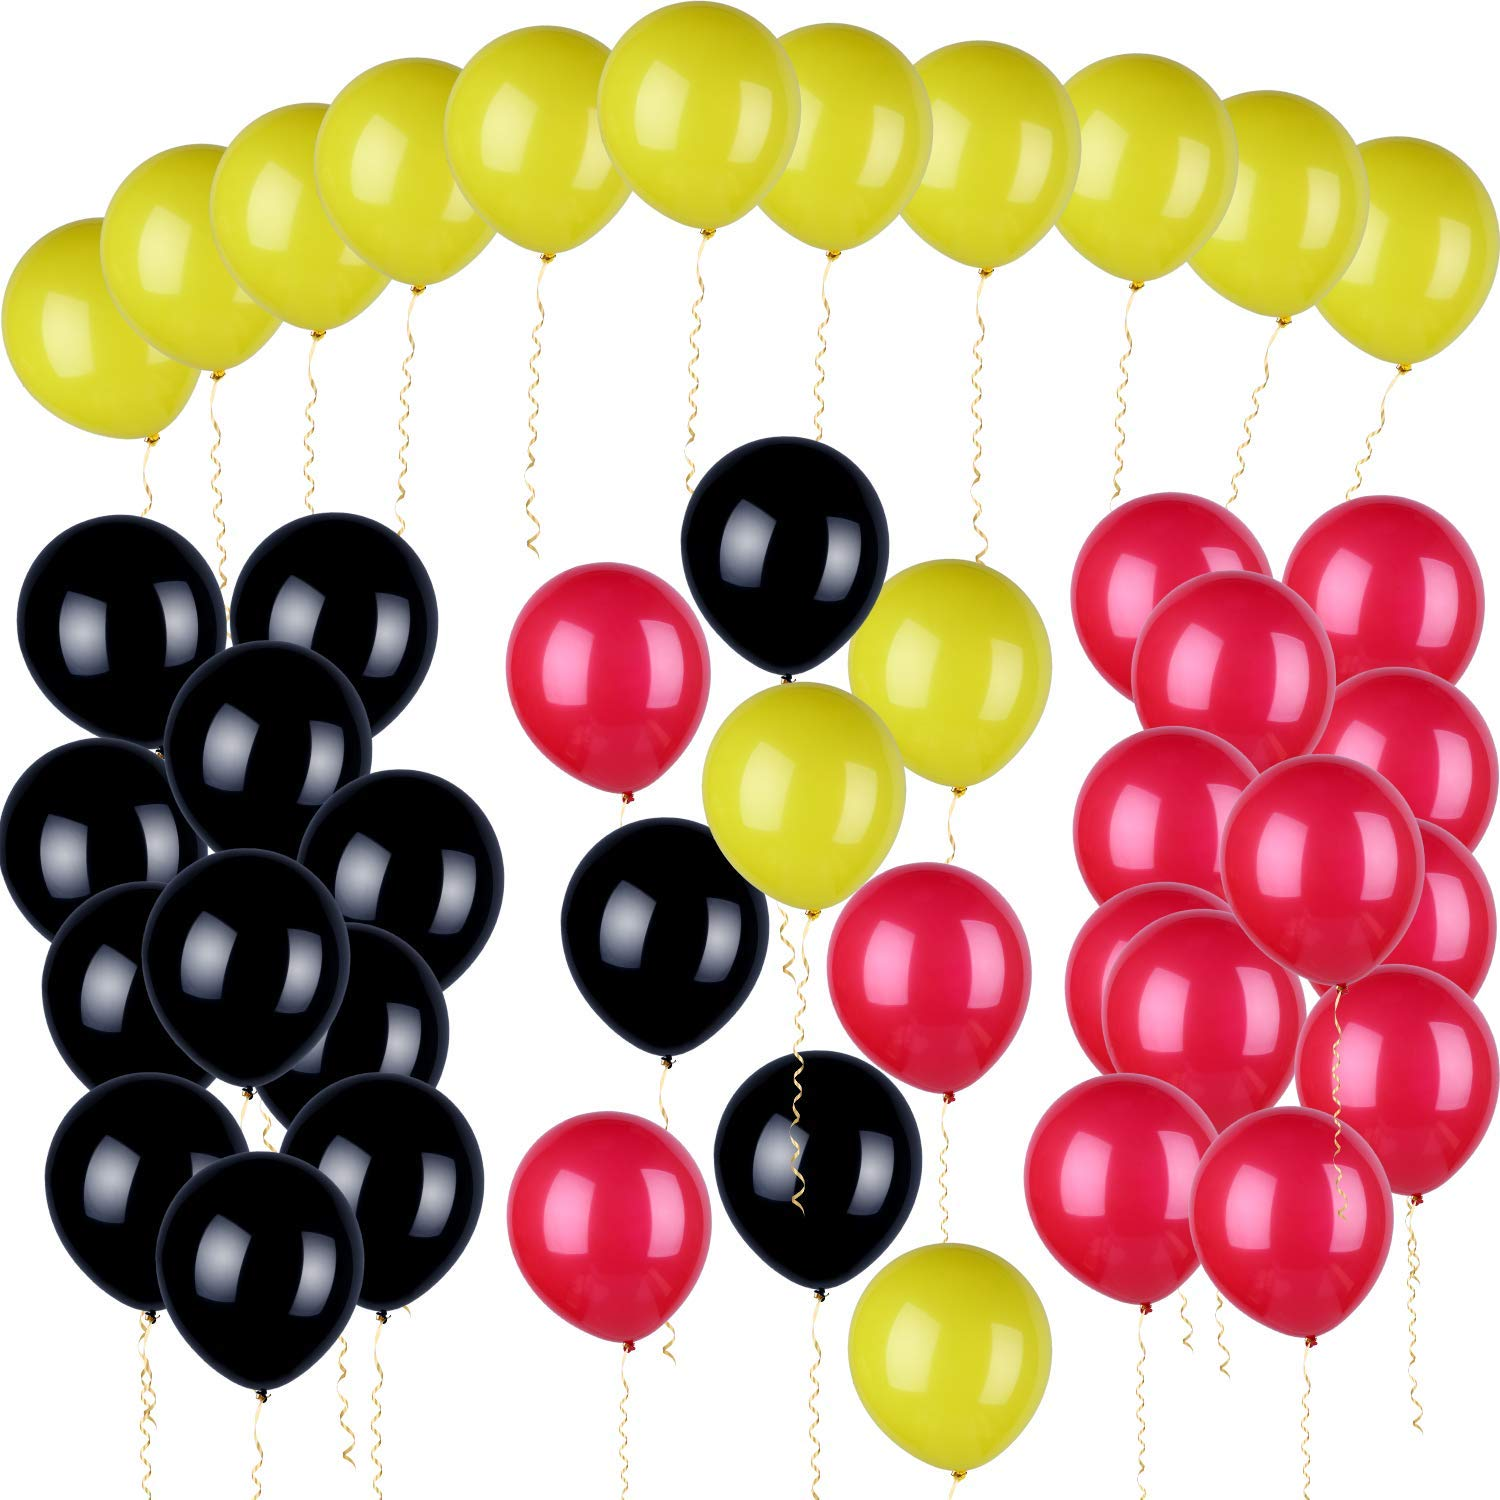 Gejoy 60 Pieces Mickey Color Latex Balloons Red Yellow Black Balloons for Themed Birthday Baby Shower Party Decorations